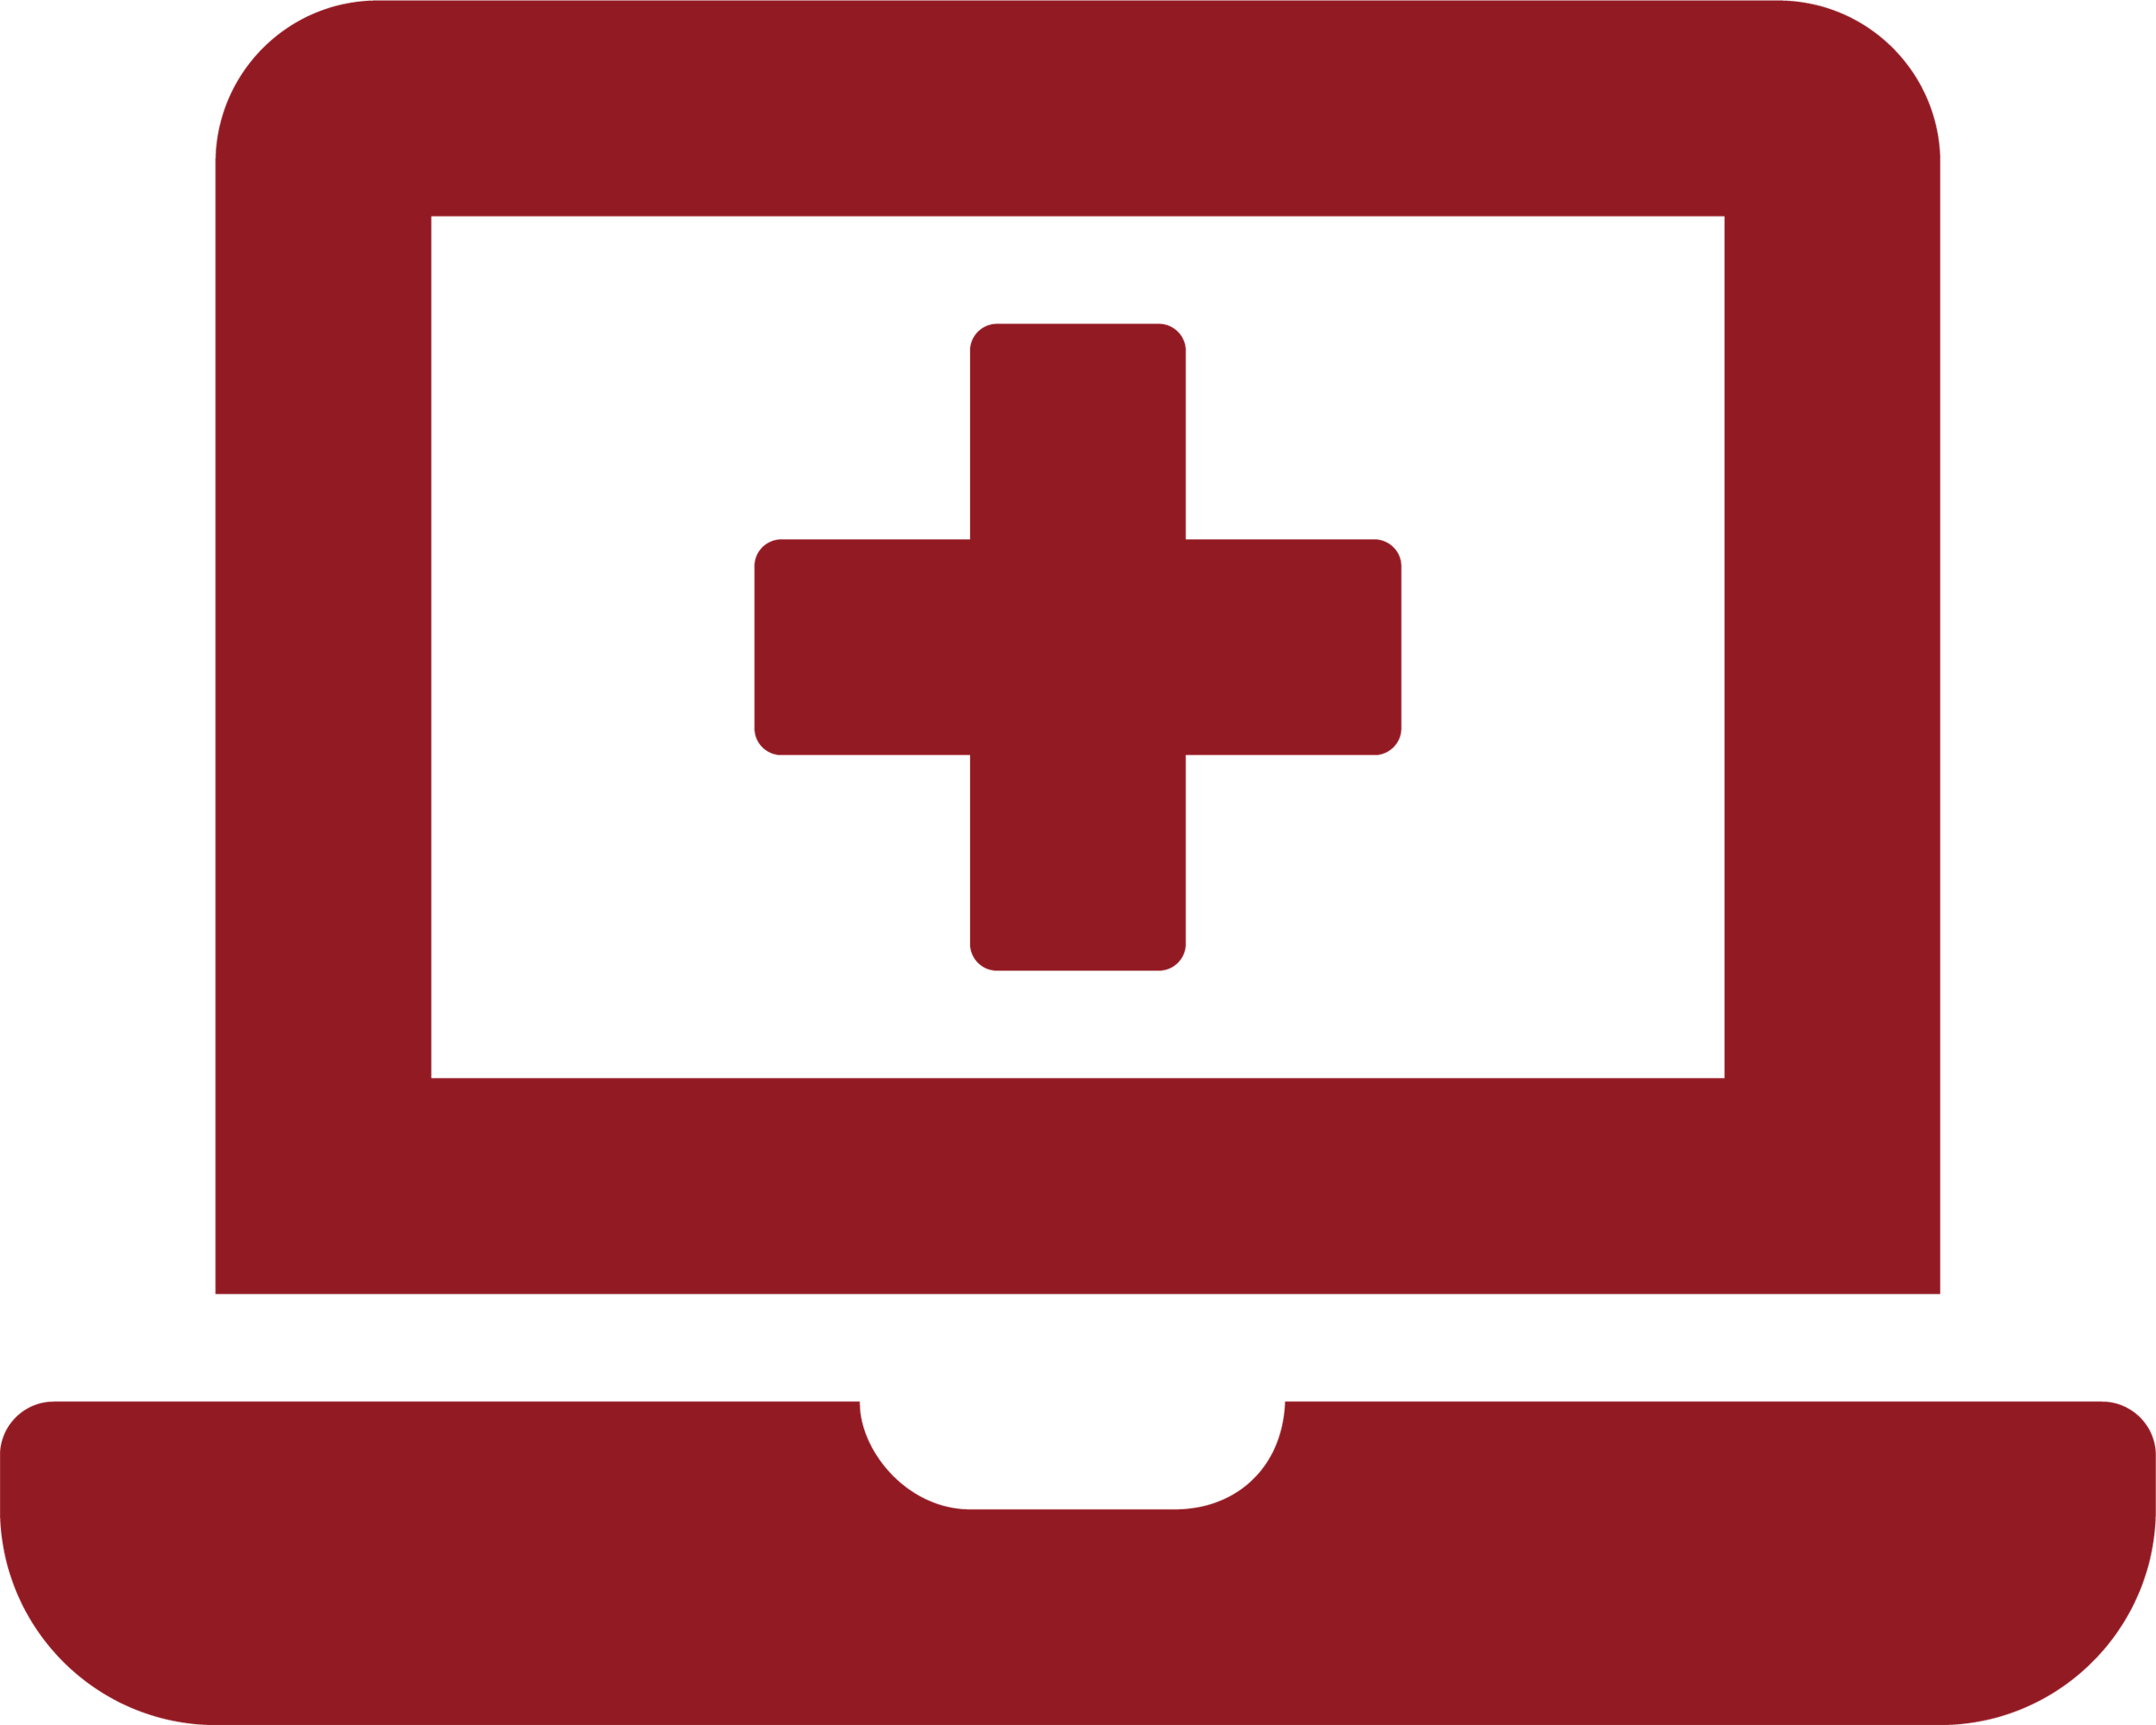 Medical cross on laptop